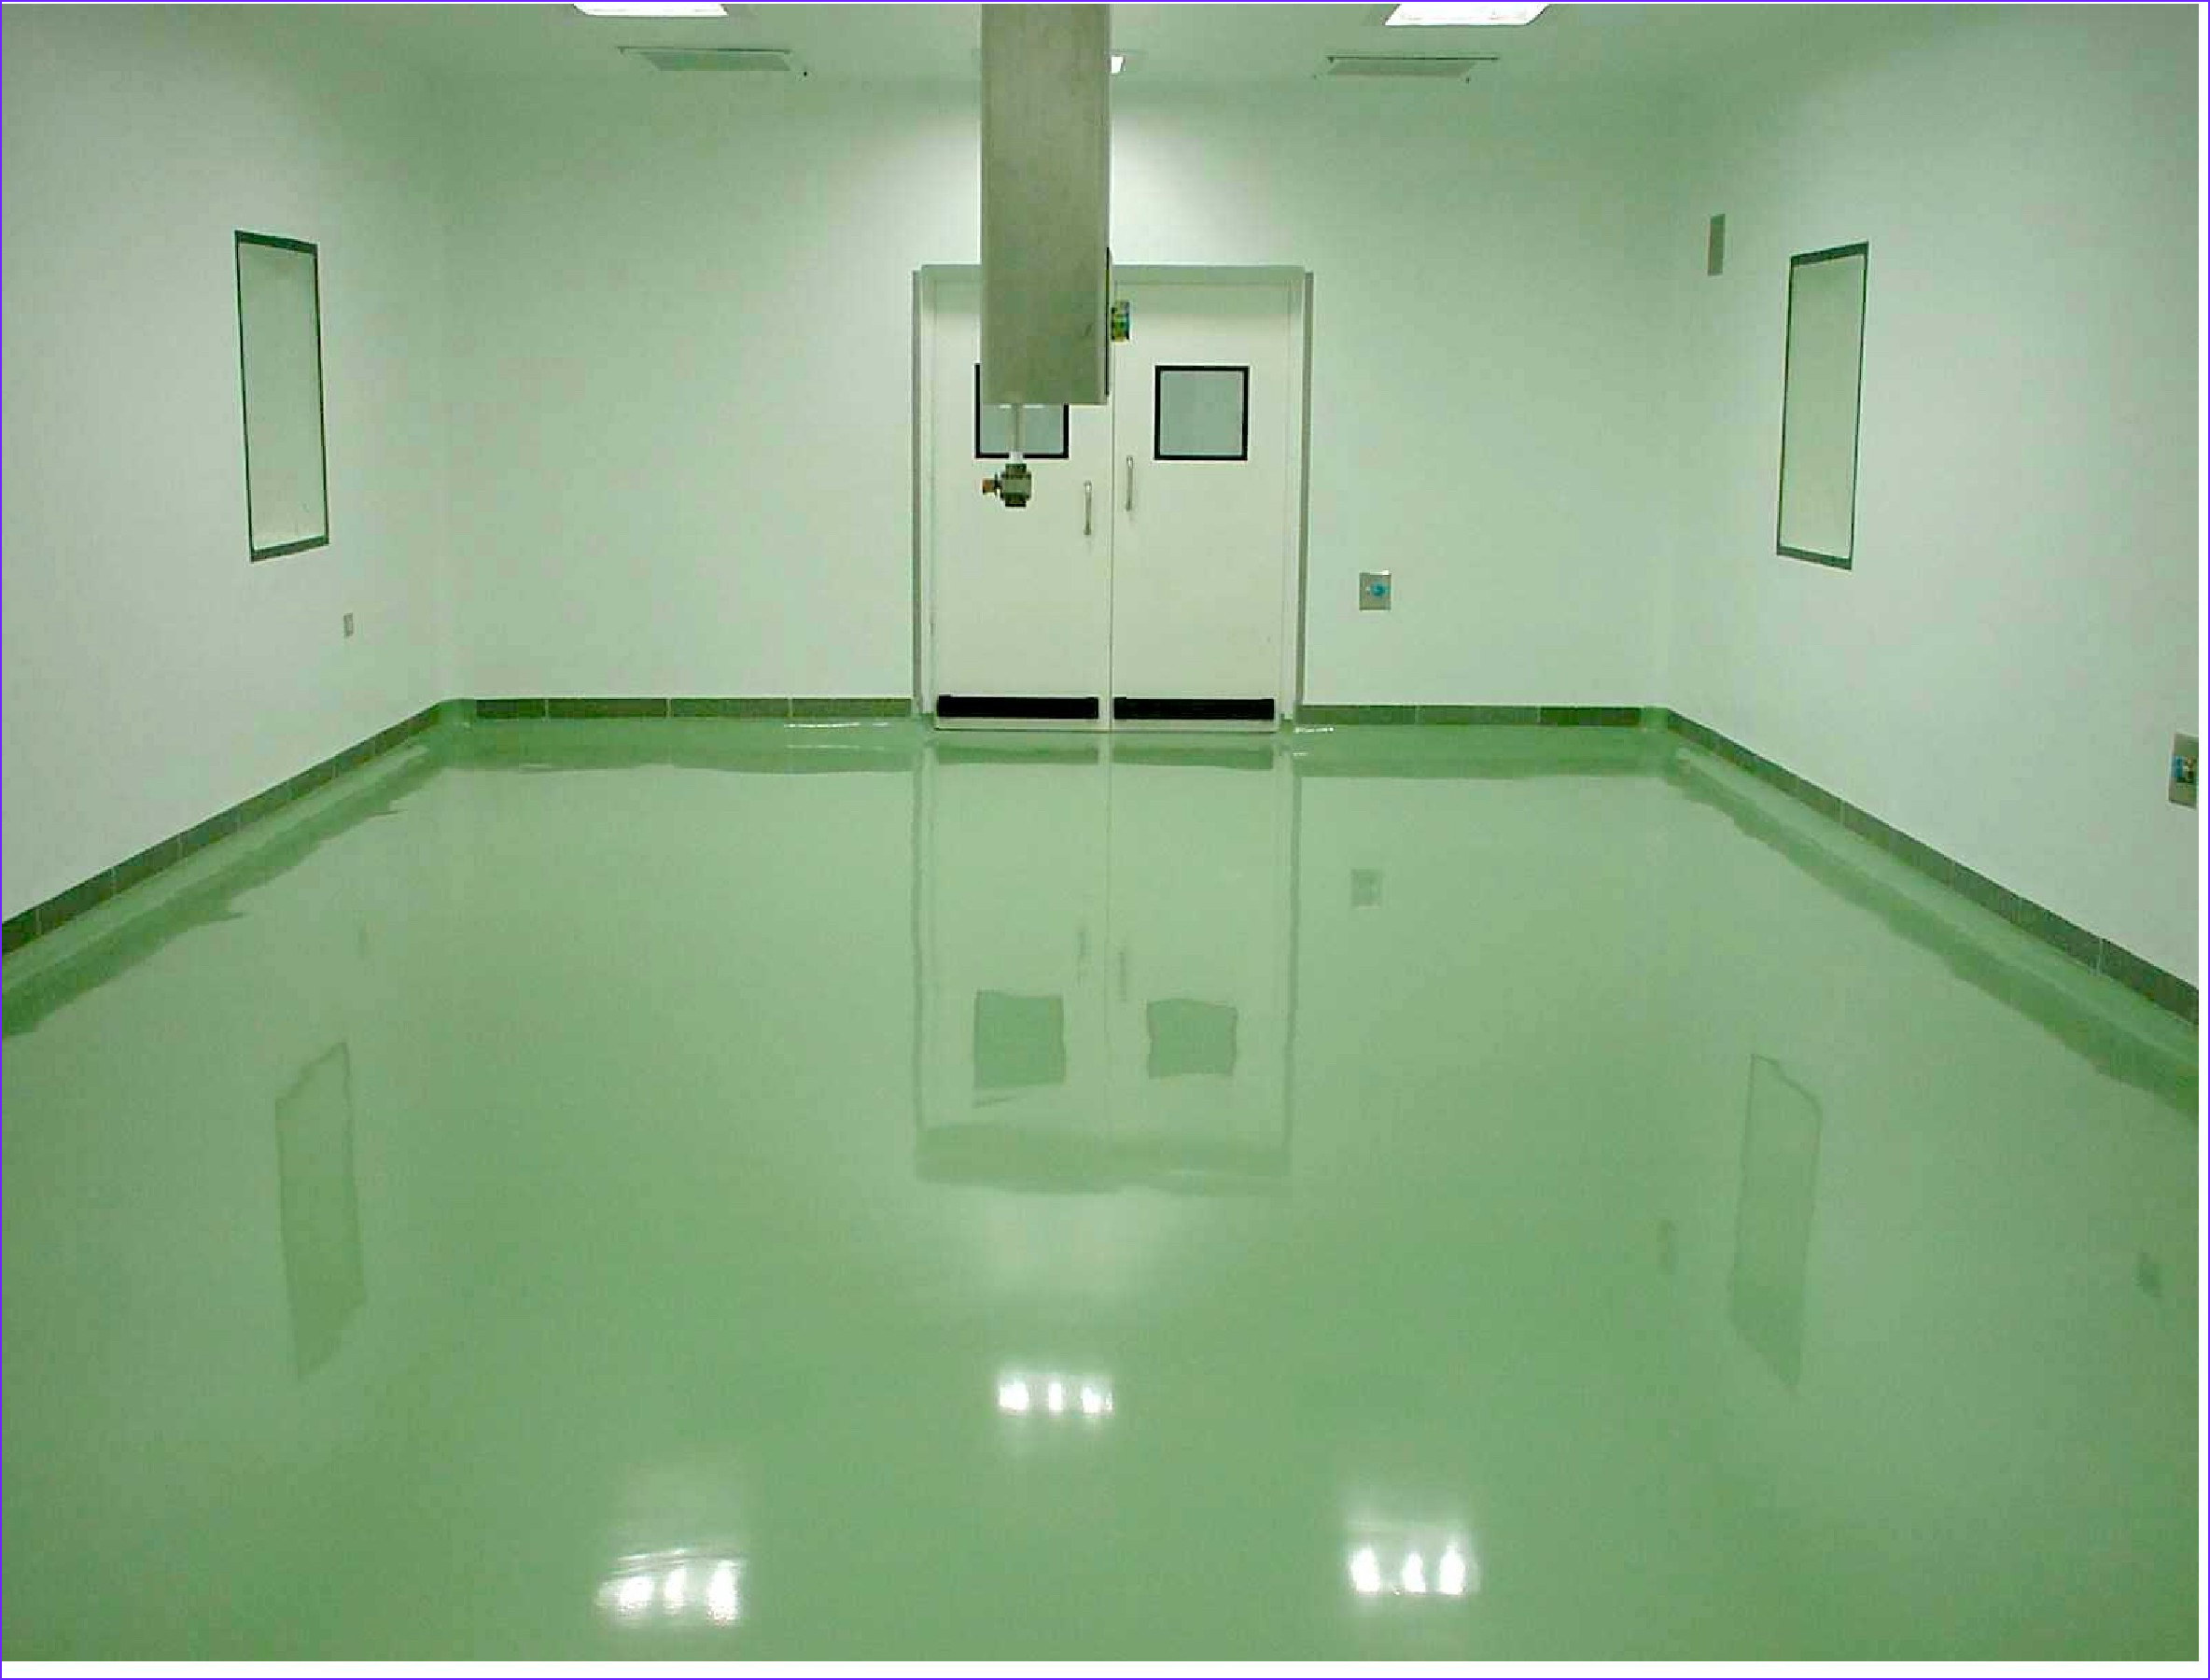 China China Top Five Epoxy Resin Floor Paint Manufacturer Maydos Pharmaceutical Factory Flooring Resin Paint